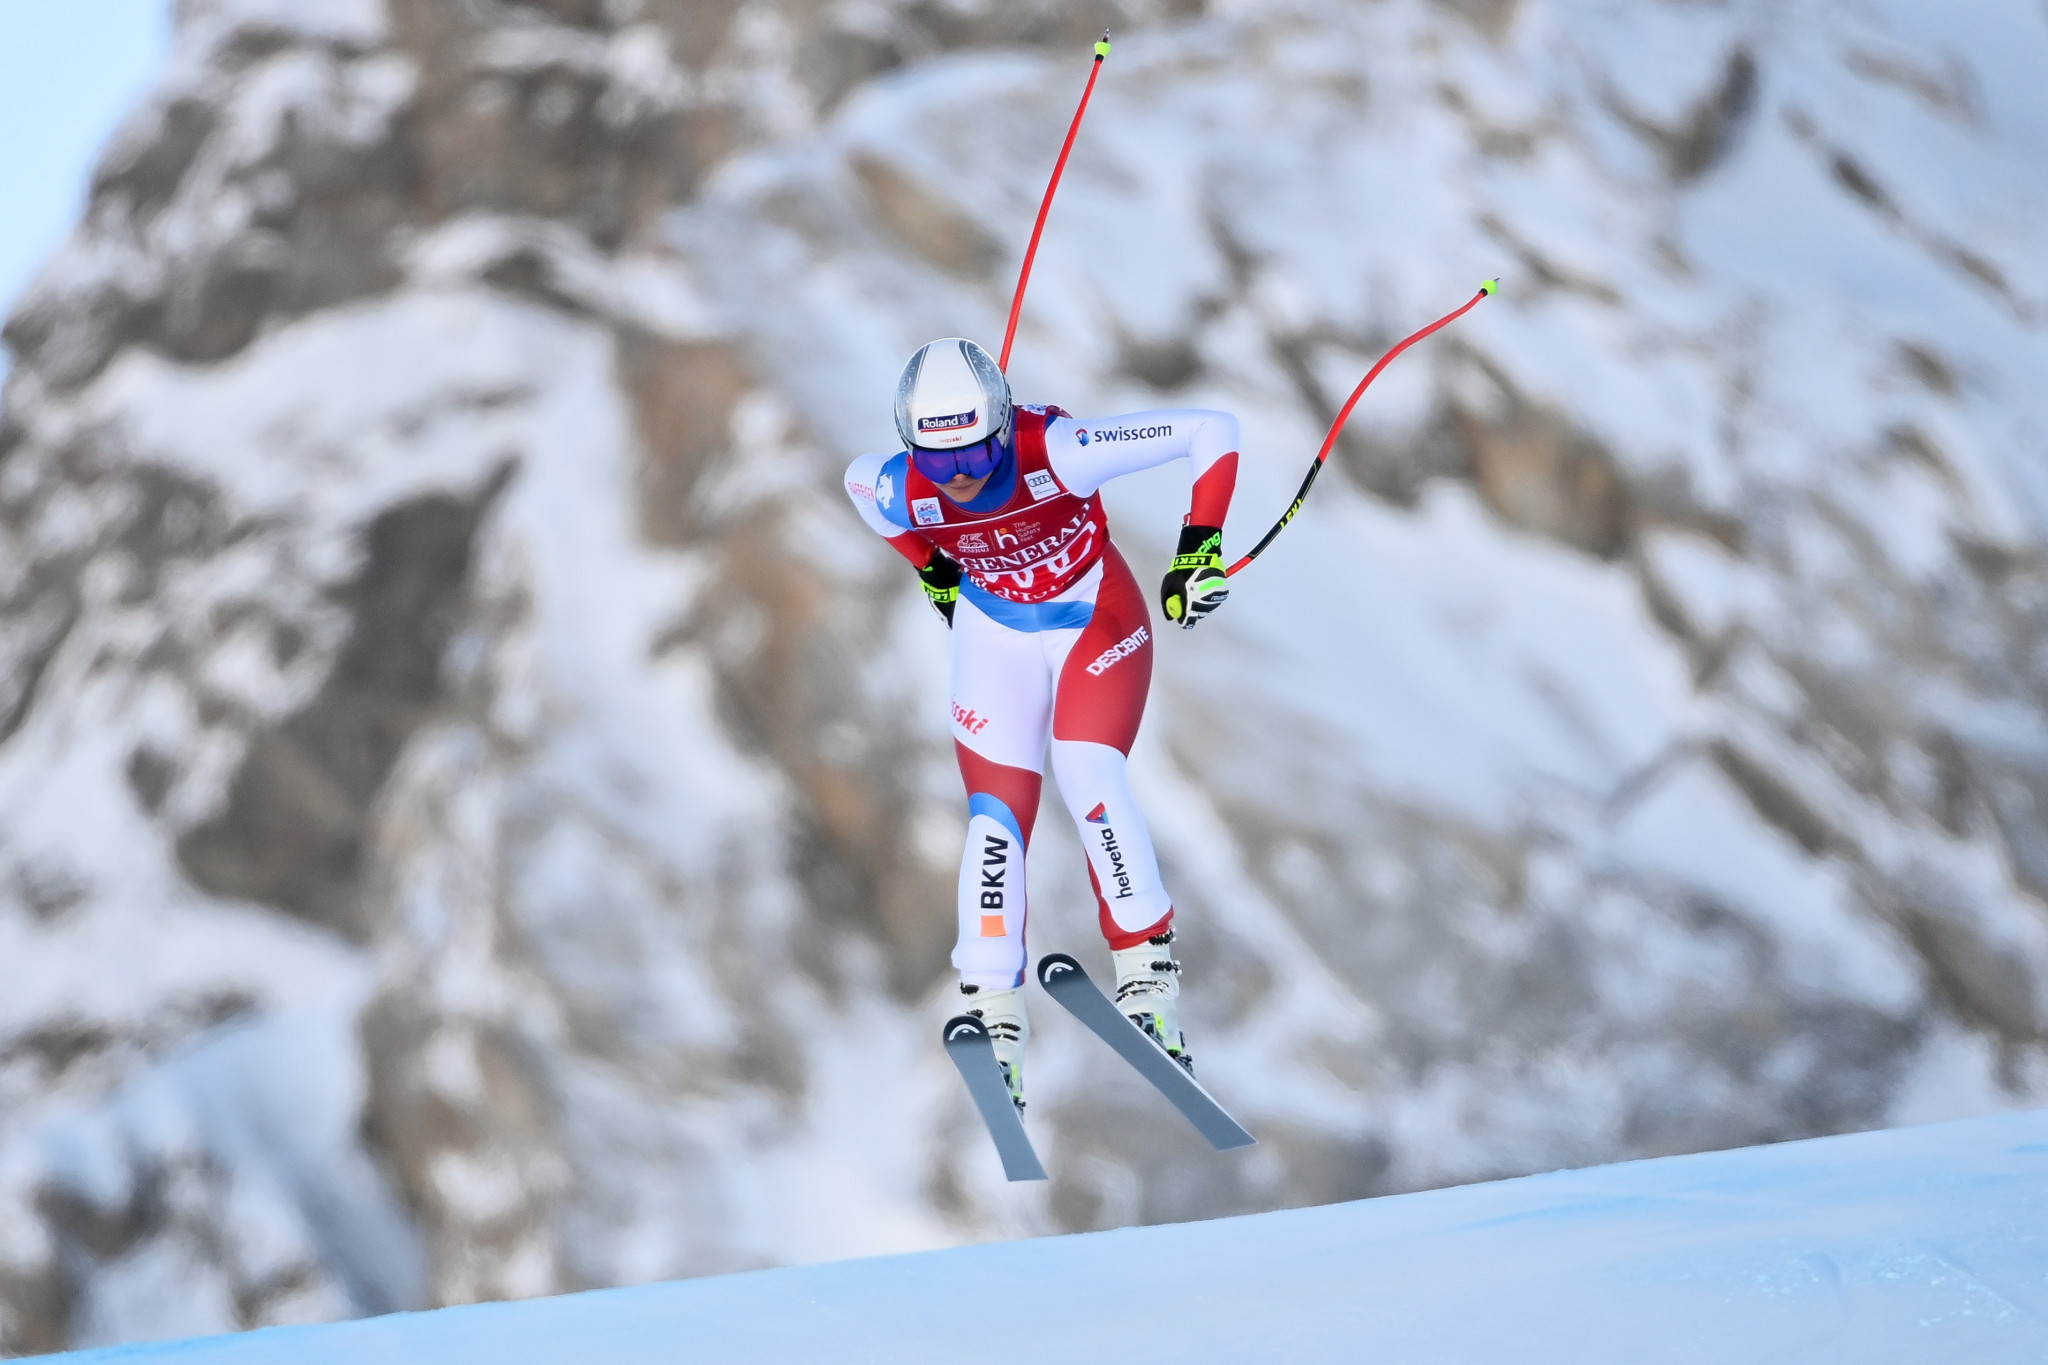 Reigning champion Suter wins first women's downhill race of World Cup season